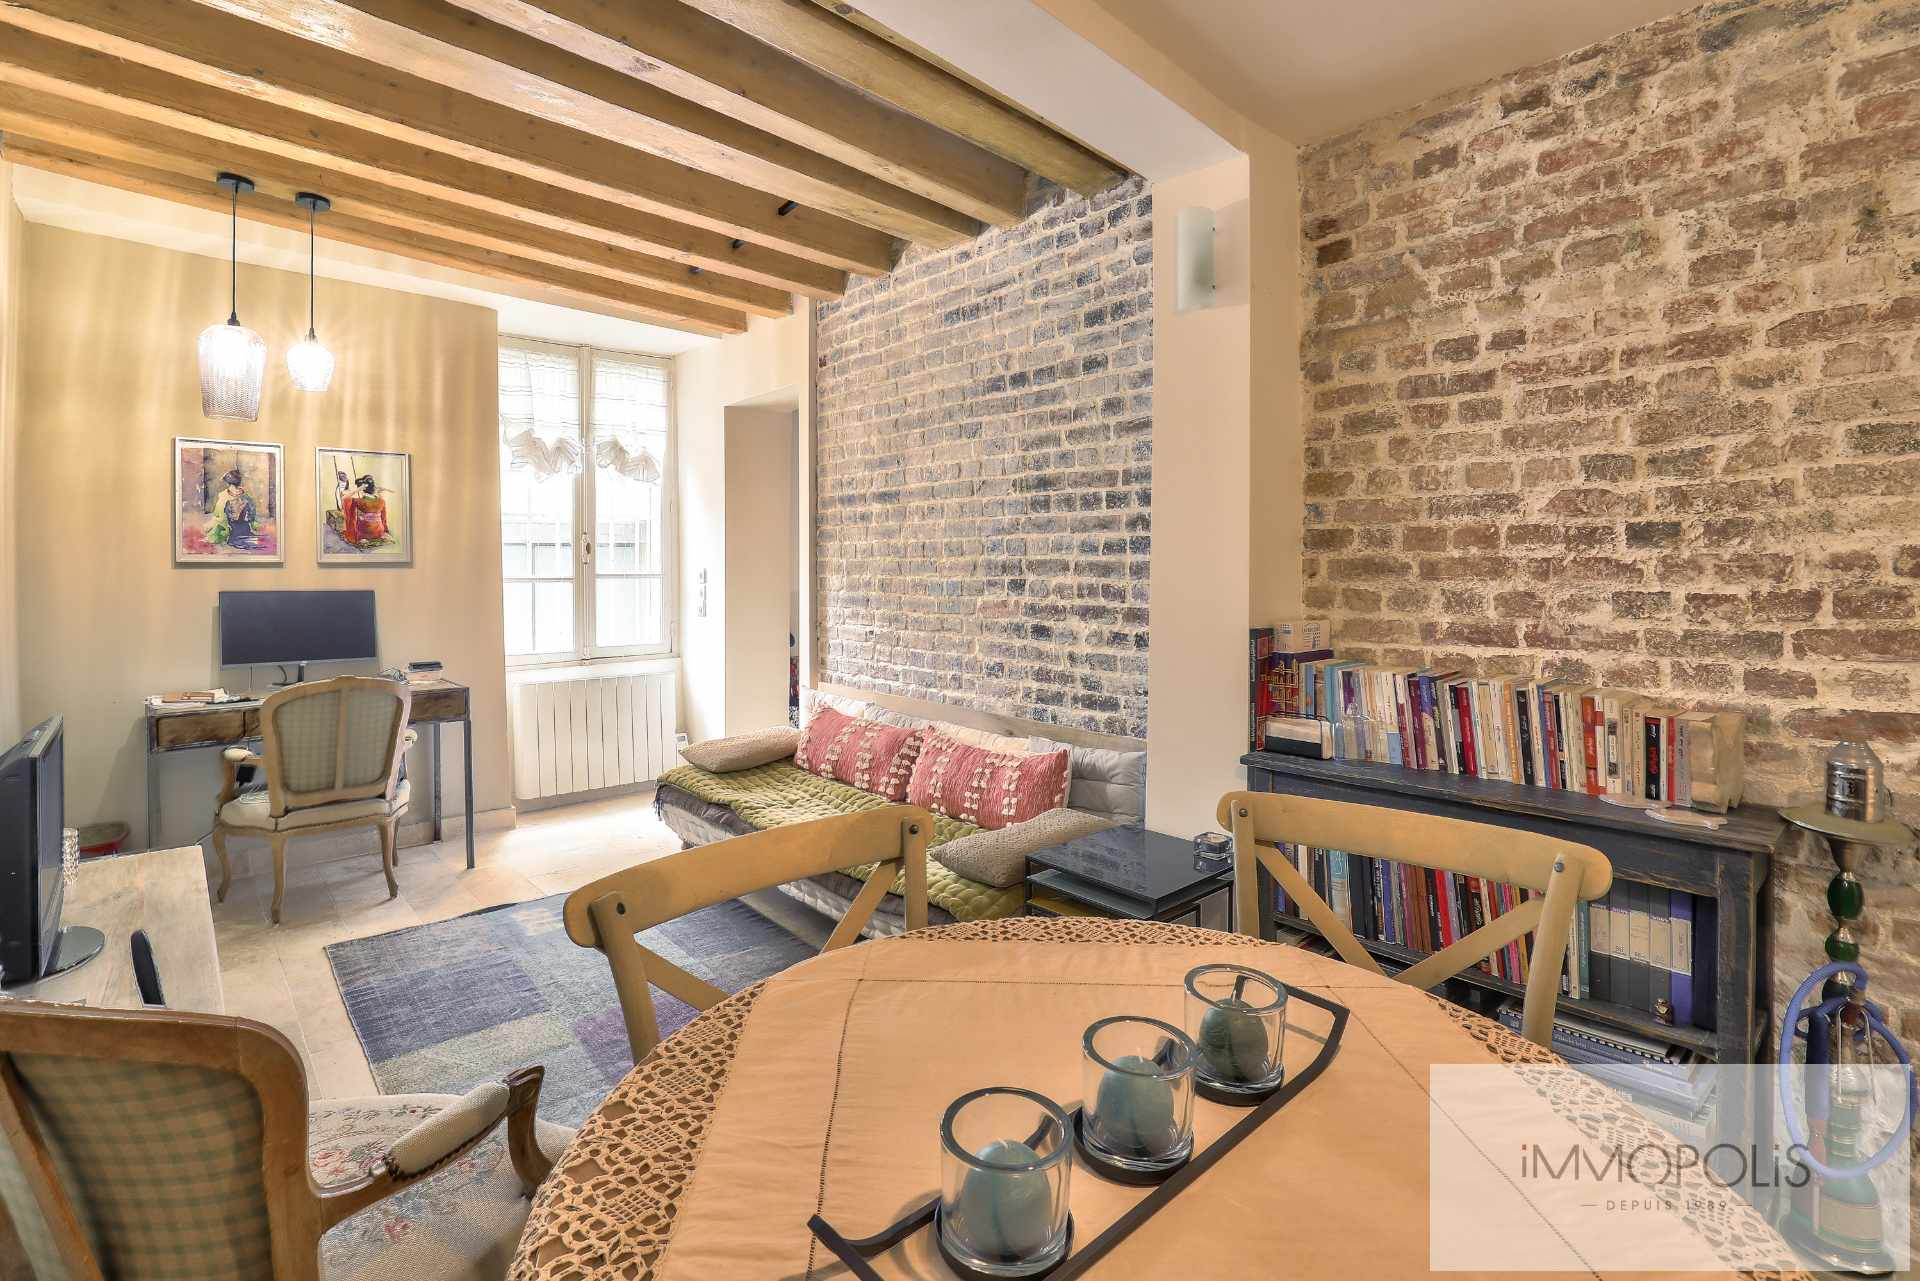 Montmartre, rue Gabrielle, beautiful 2 rooms completely renovated with stones, bricks and exposed beams: like a house! 1